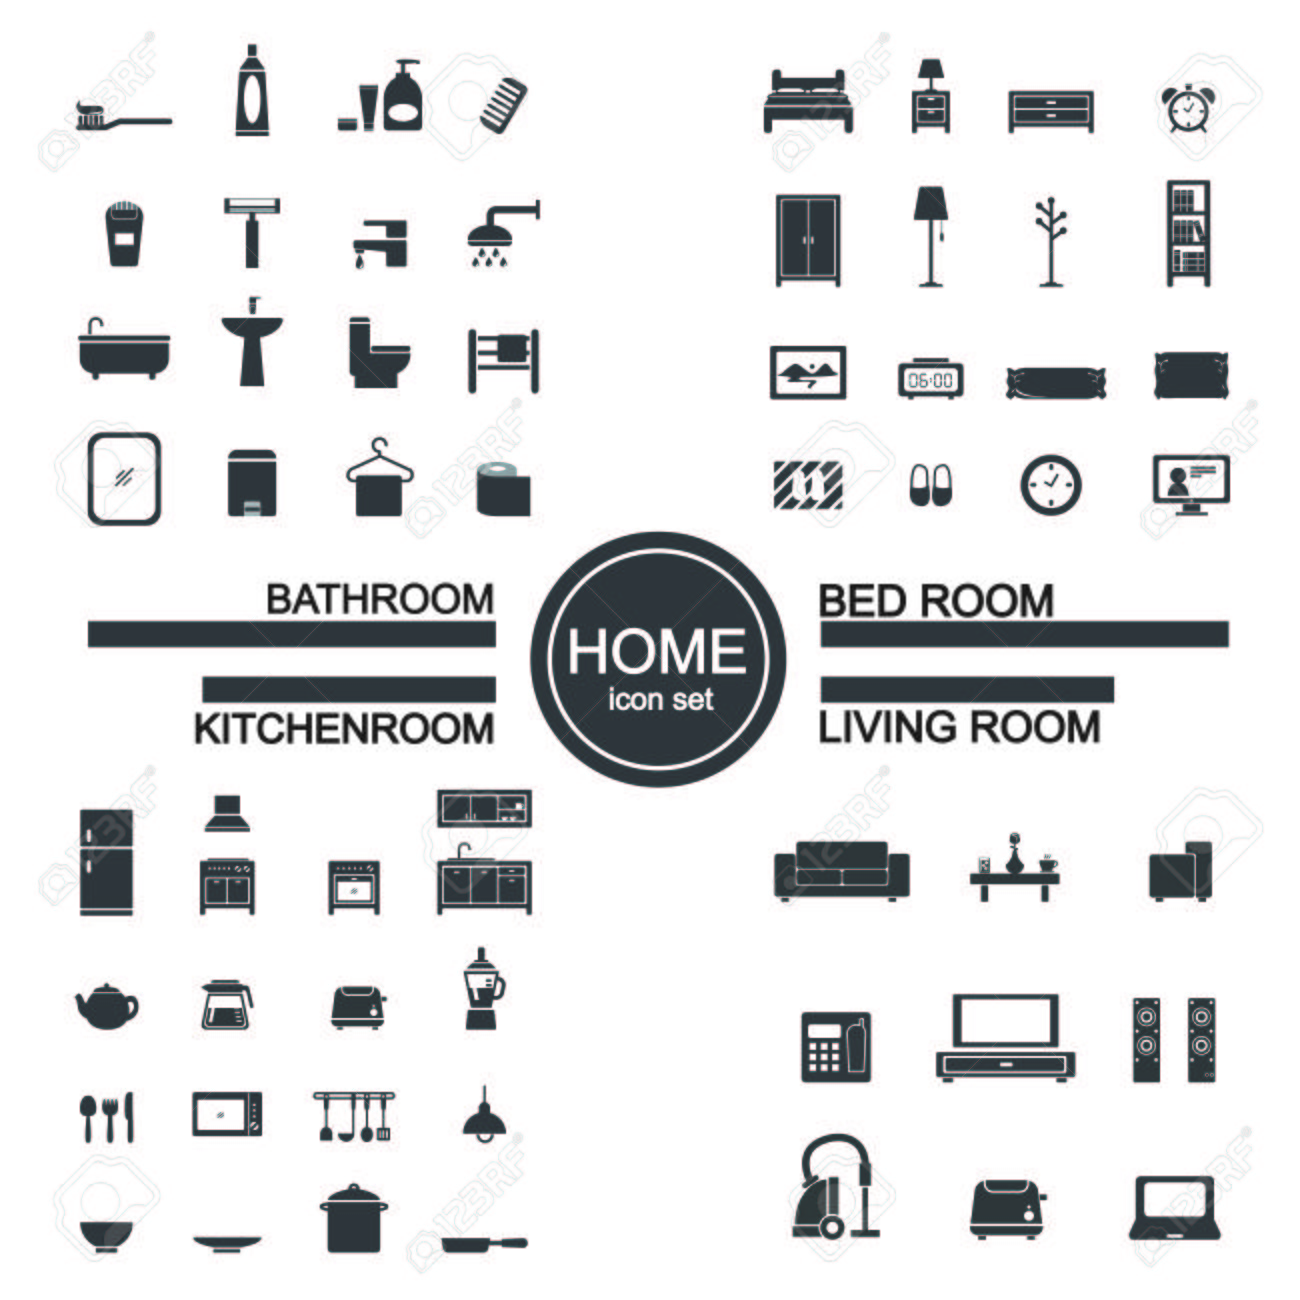 living room , bedroom , kitchen, bathroom icon set royalty free